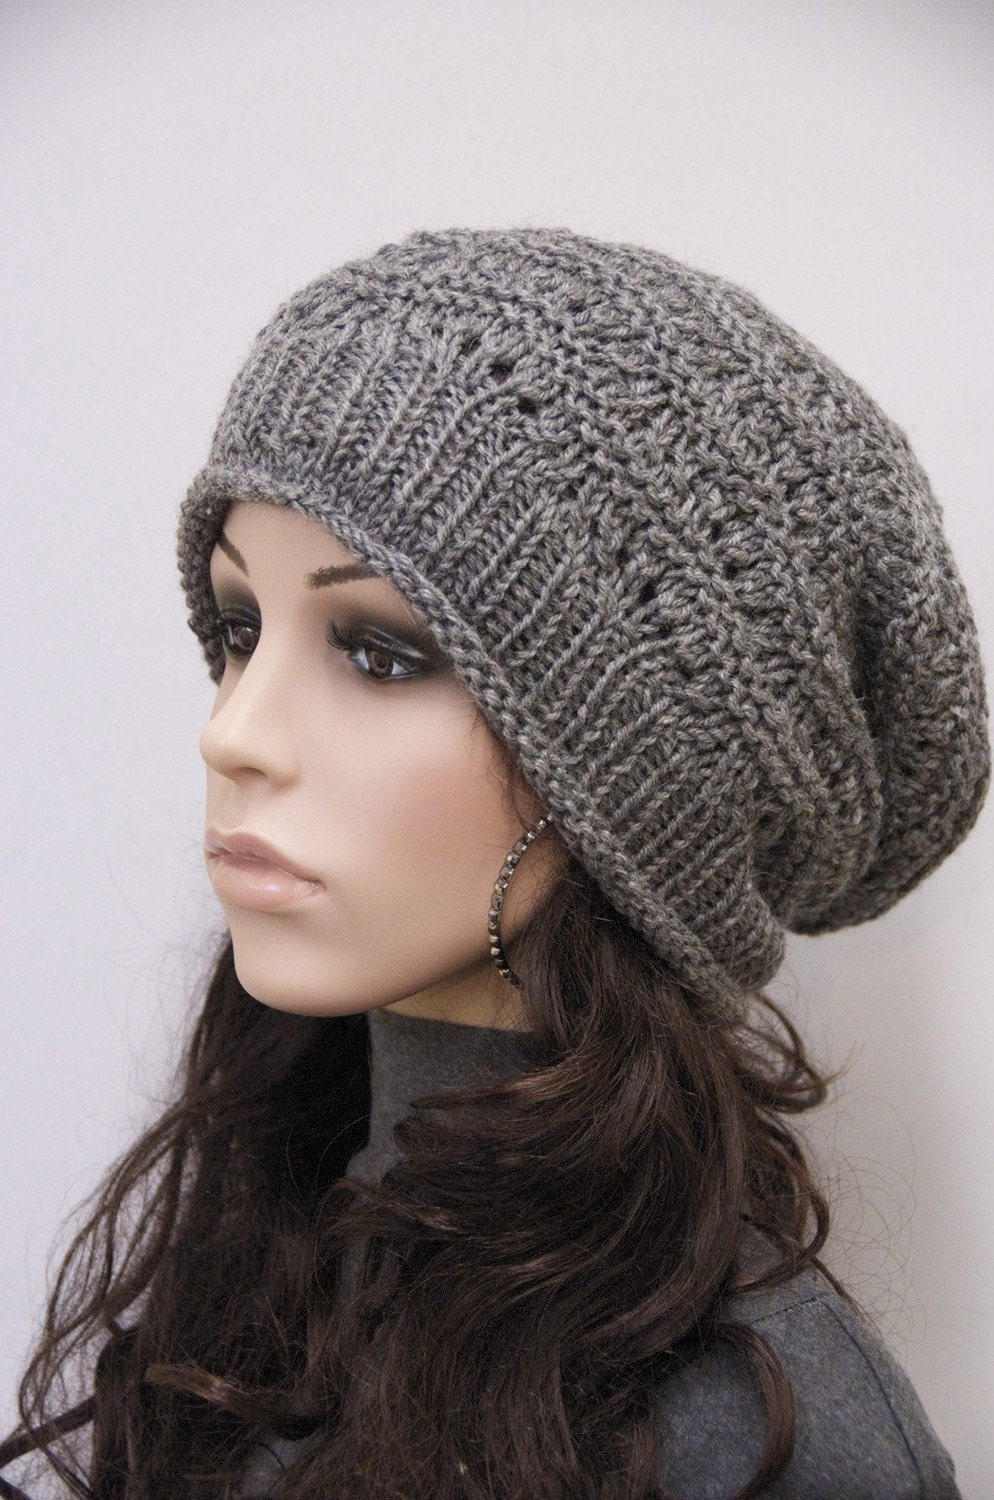 Knitting Pattern Free Slouchy Hat : Knit hat Charcoal Chunky Wool Hat slouchy hatwool by MaxMelody